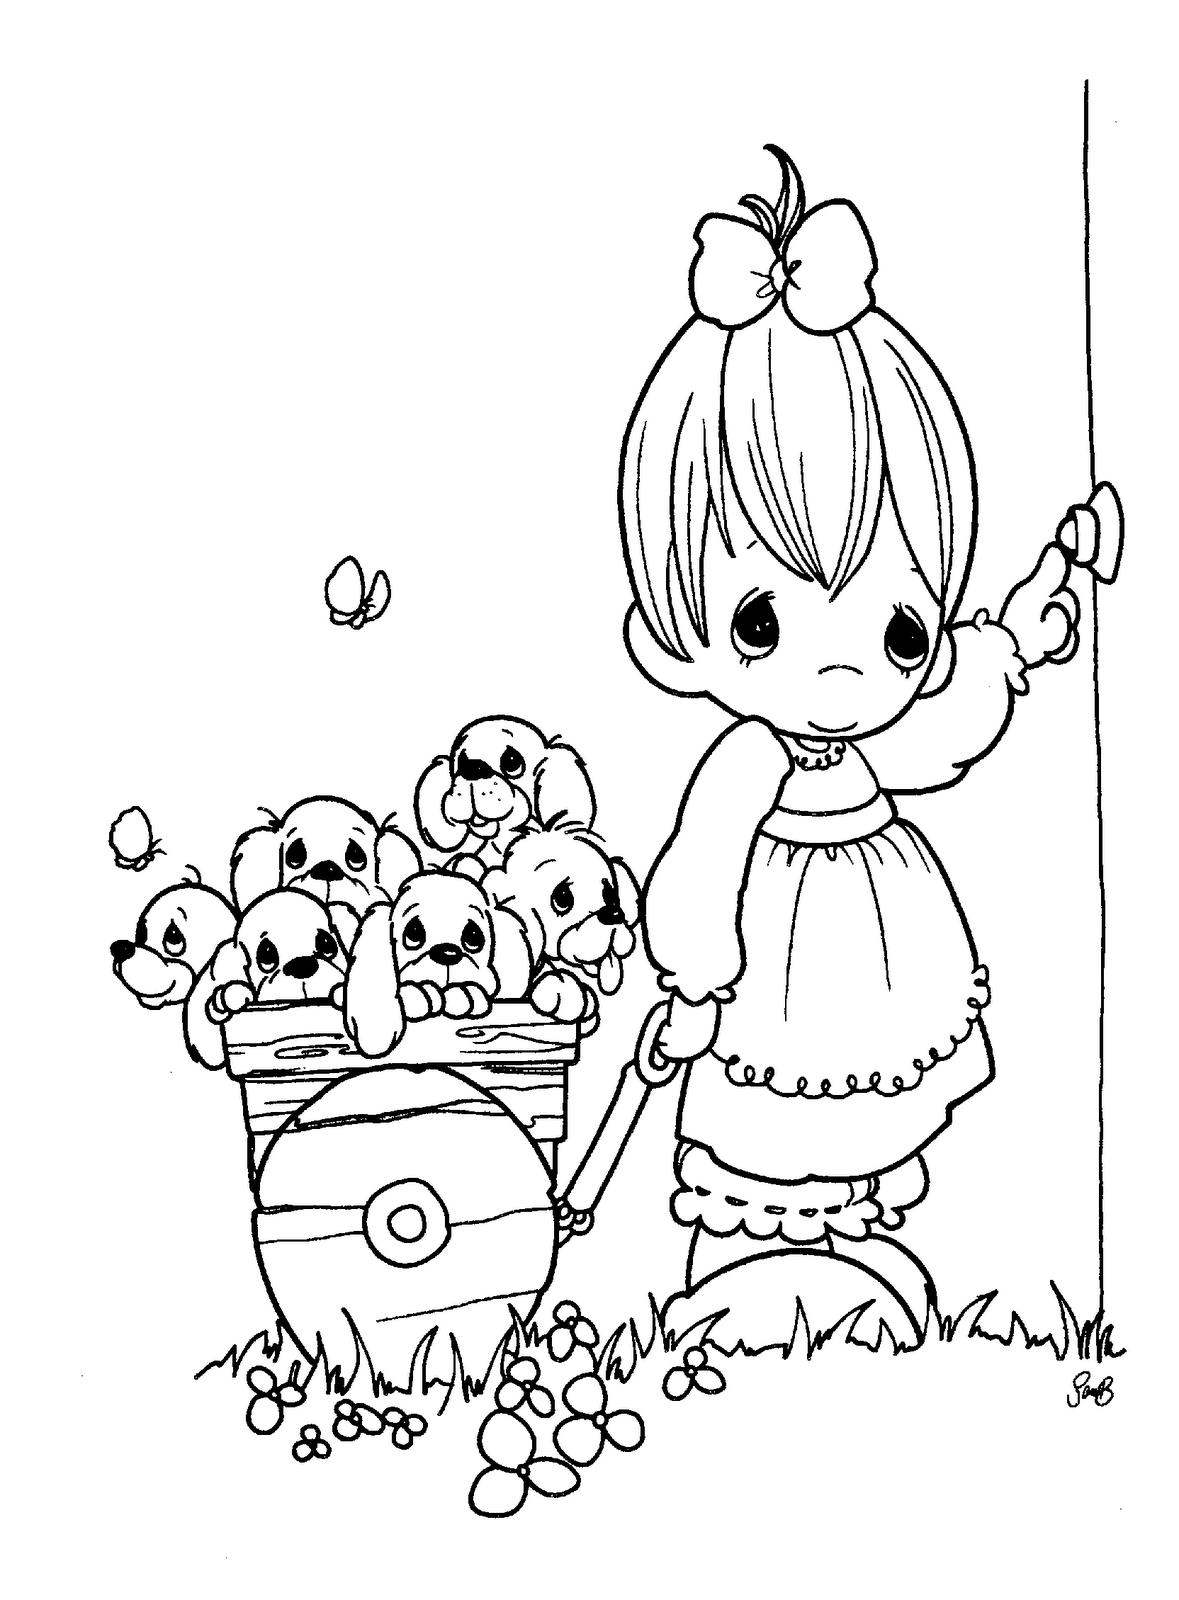 precious moments birthday coloring pages ; popular-bing-coloring-pages-coloring-to-tiny-precious-moments-birthday-coloring-page-bing-images-riscos-coloring-image